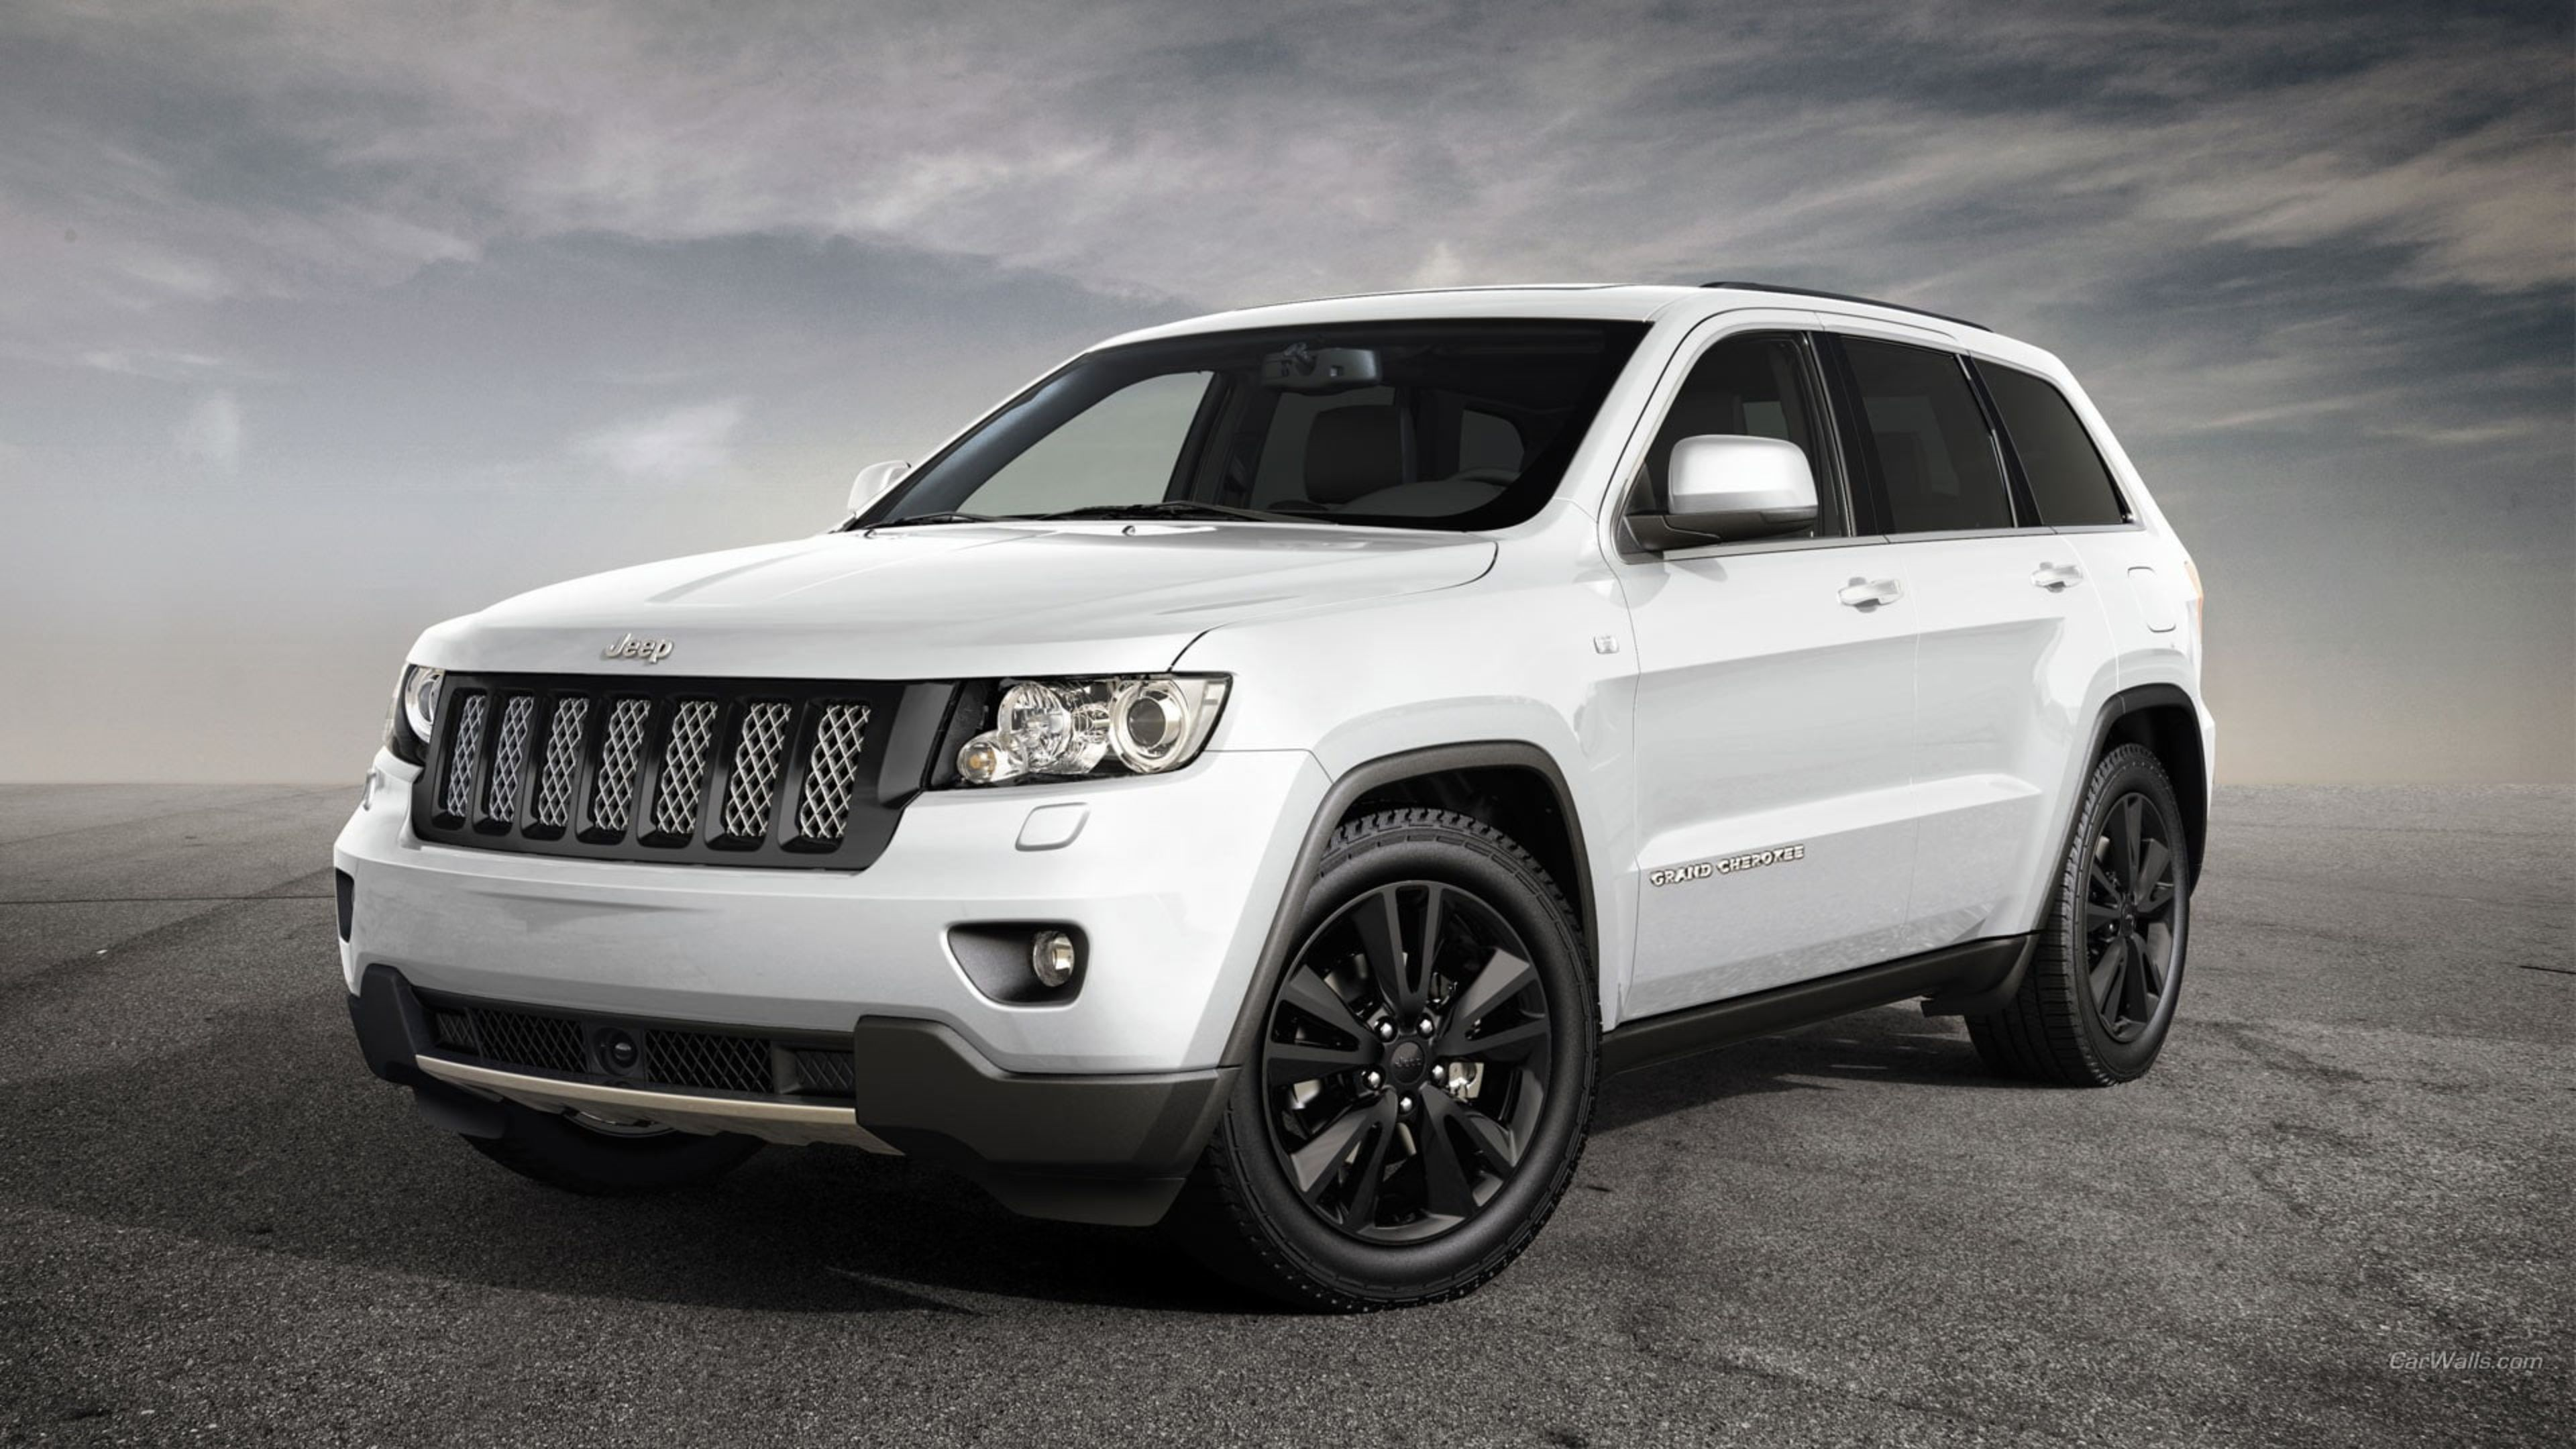 3840x2160px Free Download Hd Wallpaper Jeep Grand Cheeroke White Cars Vehicle Mode Of Transportation